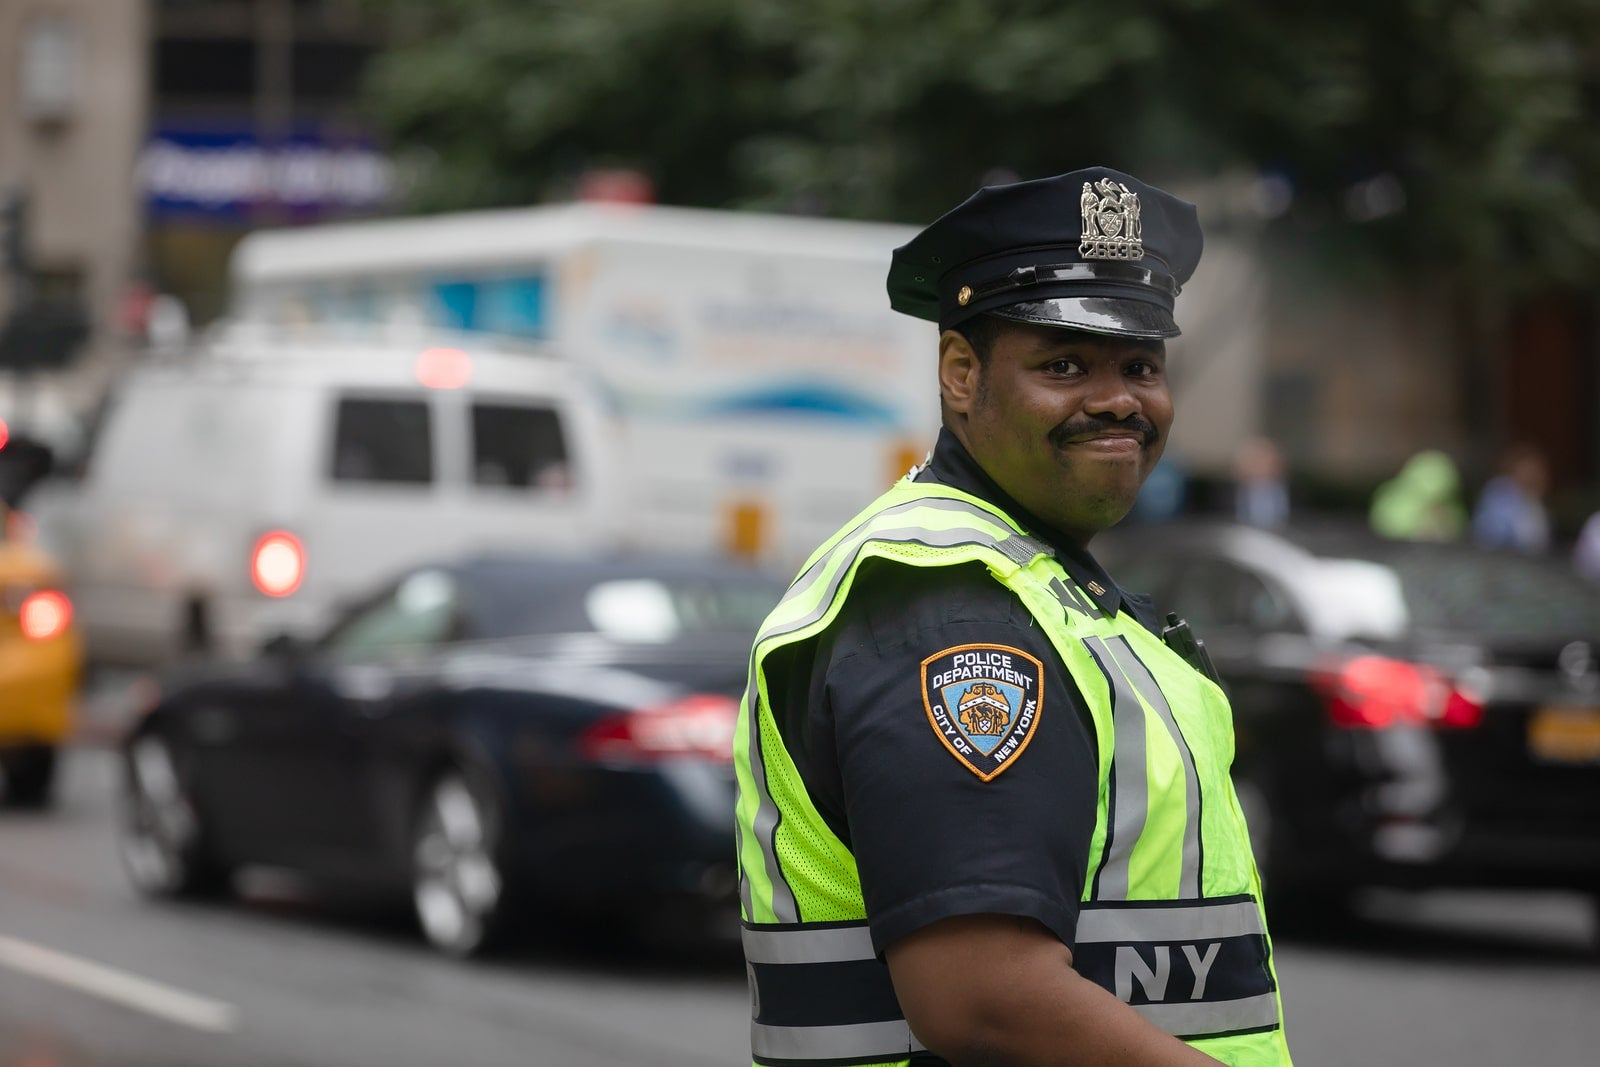 police officer in nyc